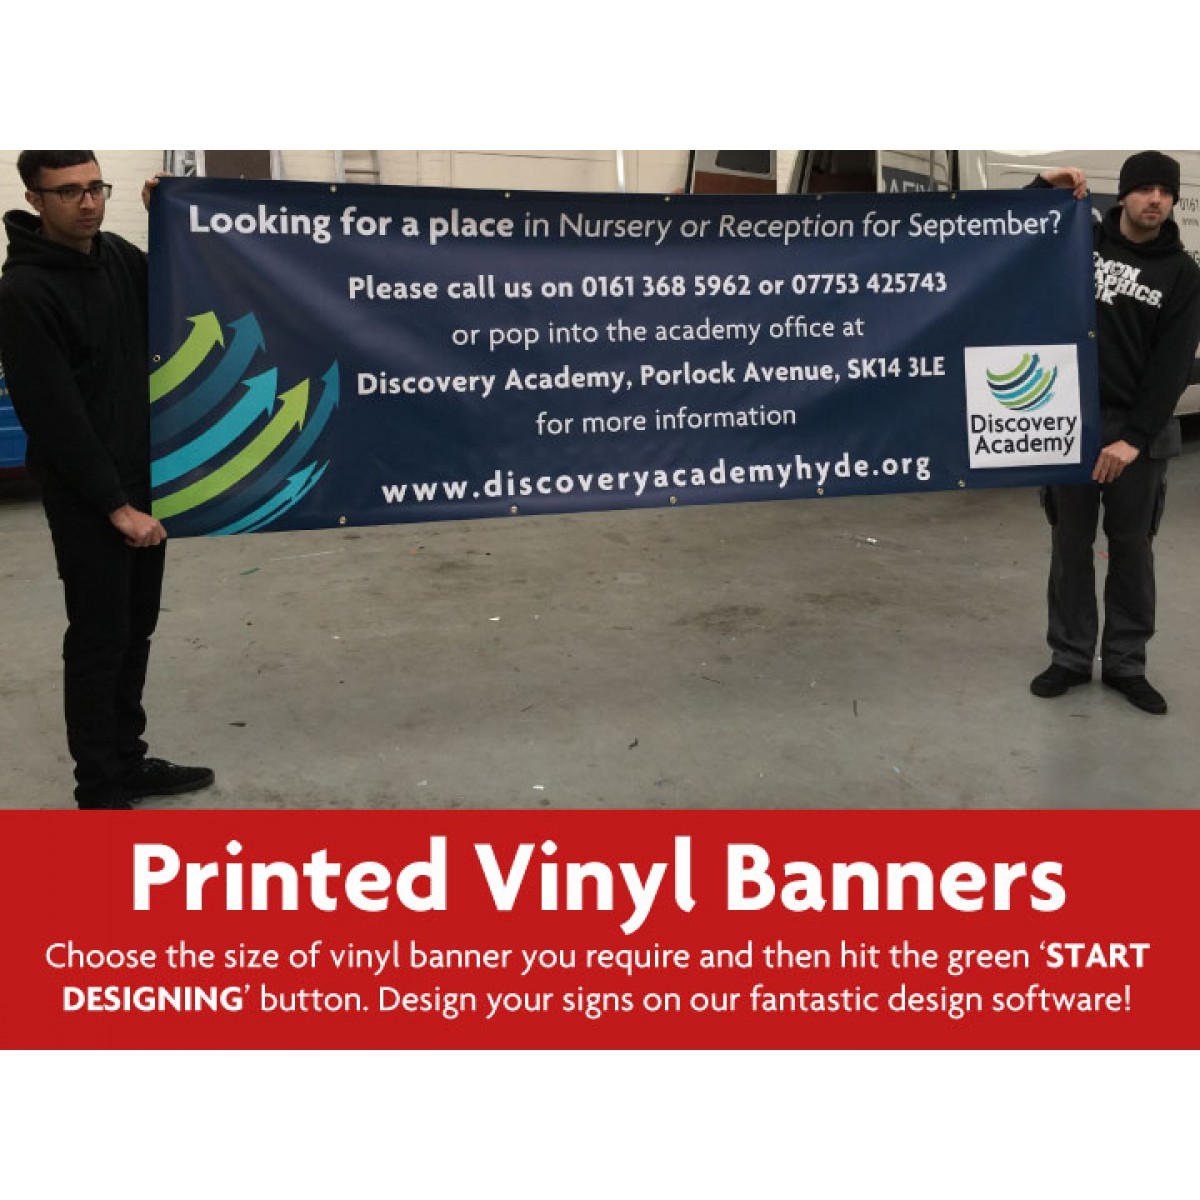 Printed Vinyl Banners Design Your Own The Sign Designer - Vinyl banners design